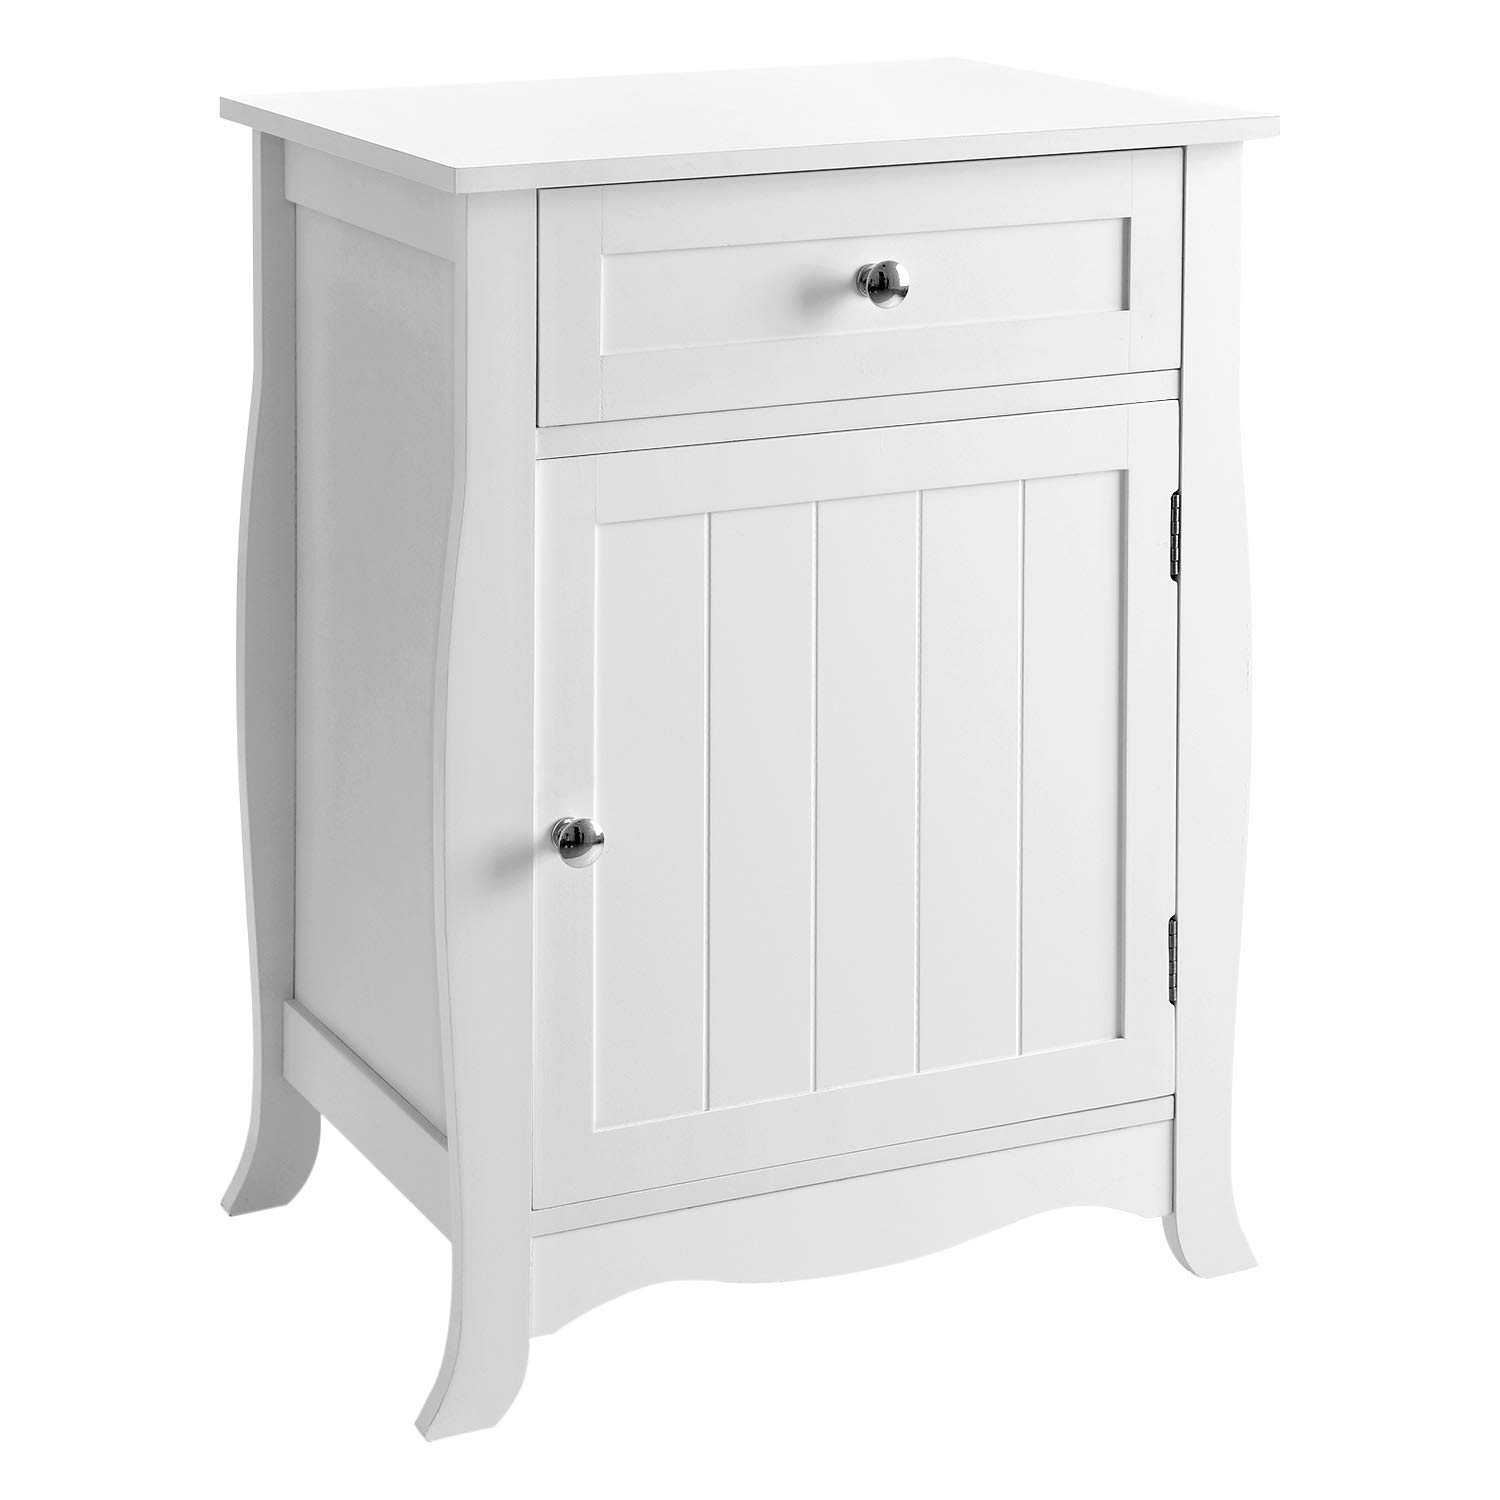 songmics white nightstand end table with storage winsome accent instructions cabinet and drawer wooden bedside large capacity easy assemble kitchen inexpensive patio chairs box